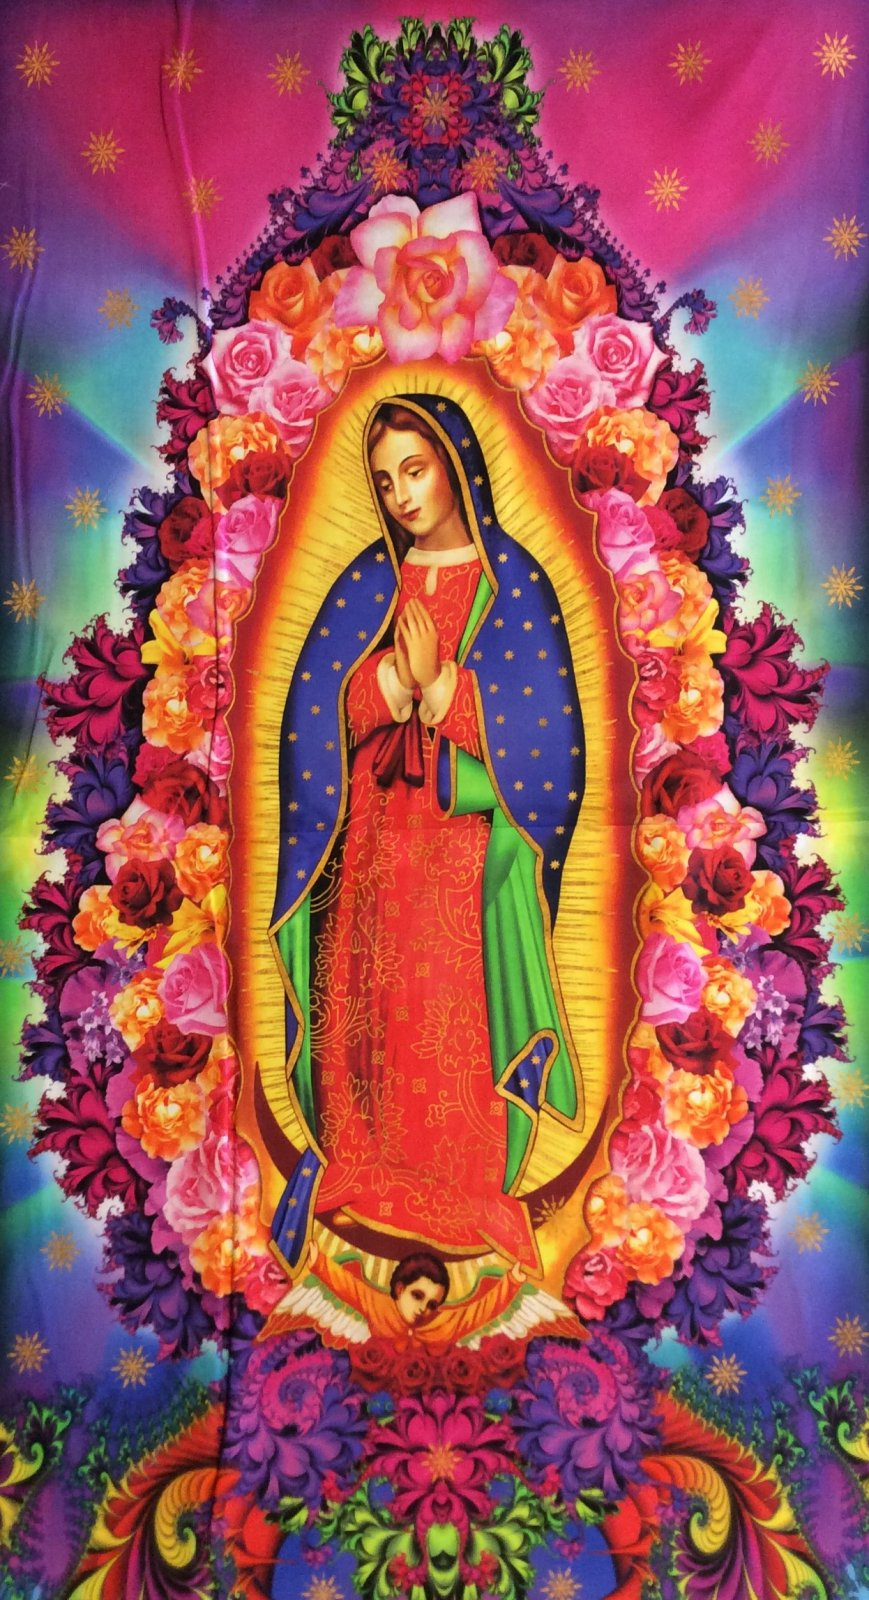 Our Lady of Guadalupe Fabric Large Scale Panel Psychedelic Cotton Quilting Fabric RK216